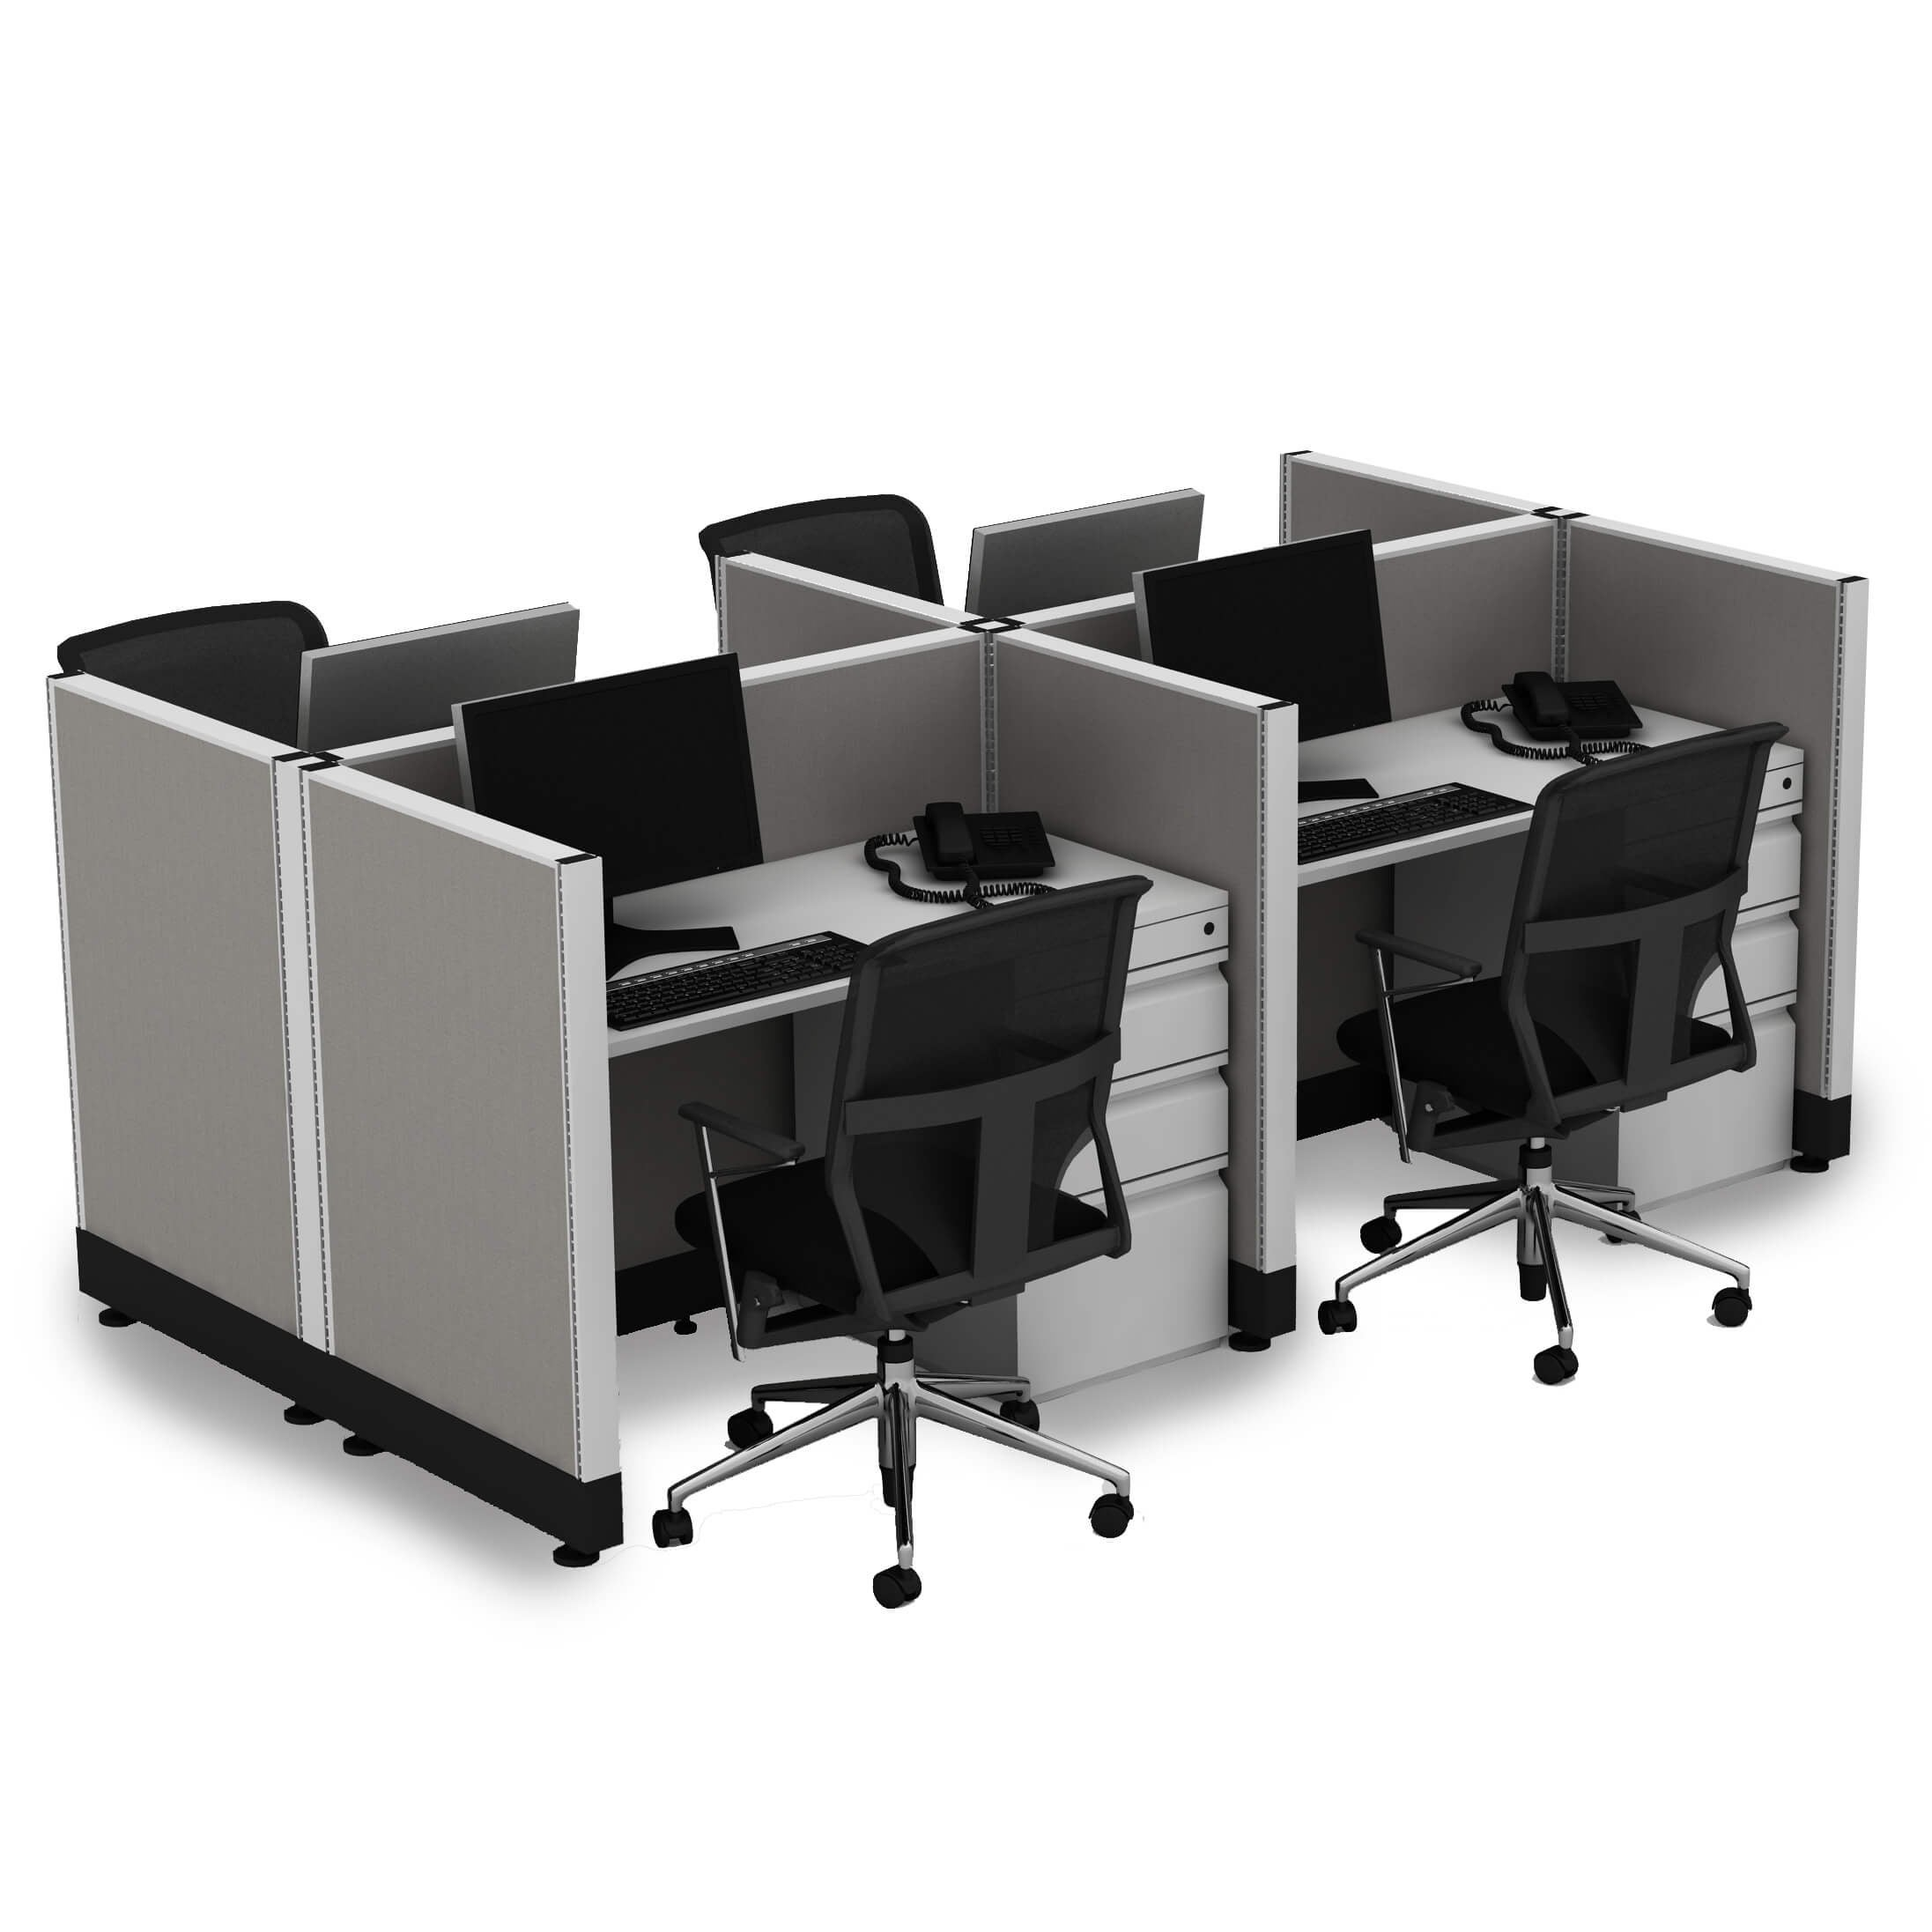 Small Cubicles 39H 4pack Cluster Powered (4x4 - Walnut Desk White Paint - Assembly Required)